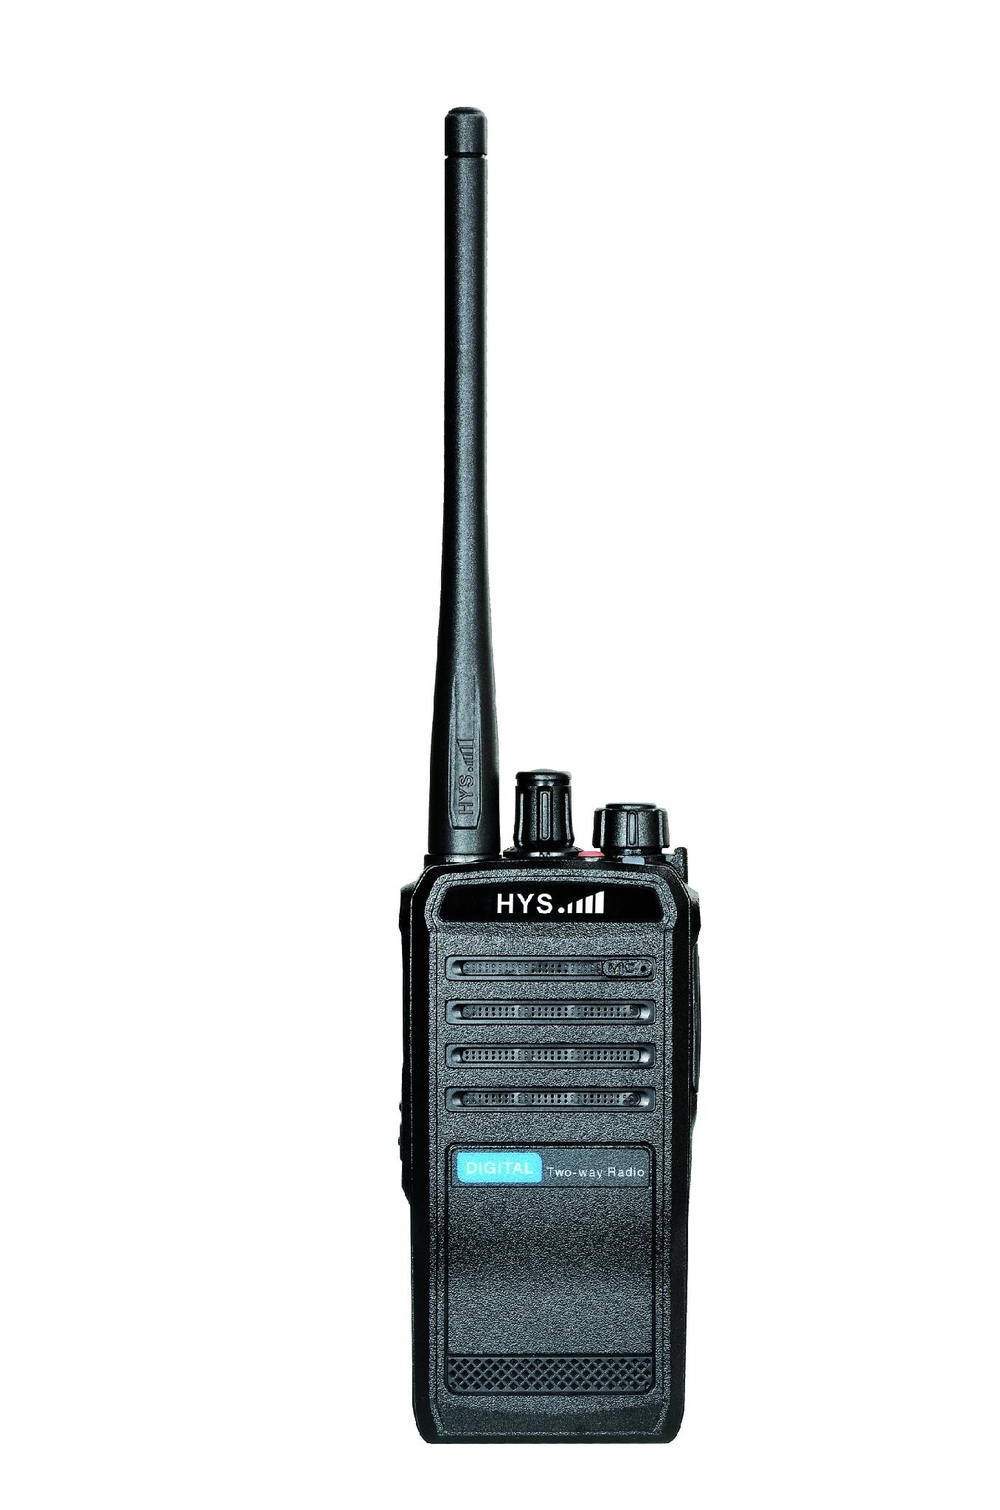 TC-818DP HYS 16CH 136-174 MHZ/400-470 MHz DPMR Portable Digital Radio